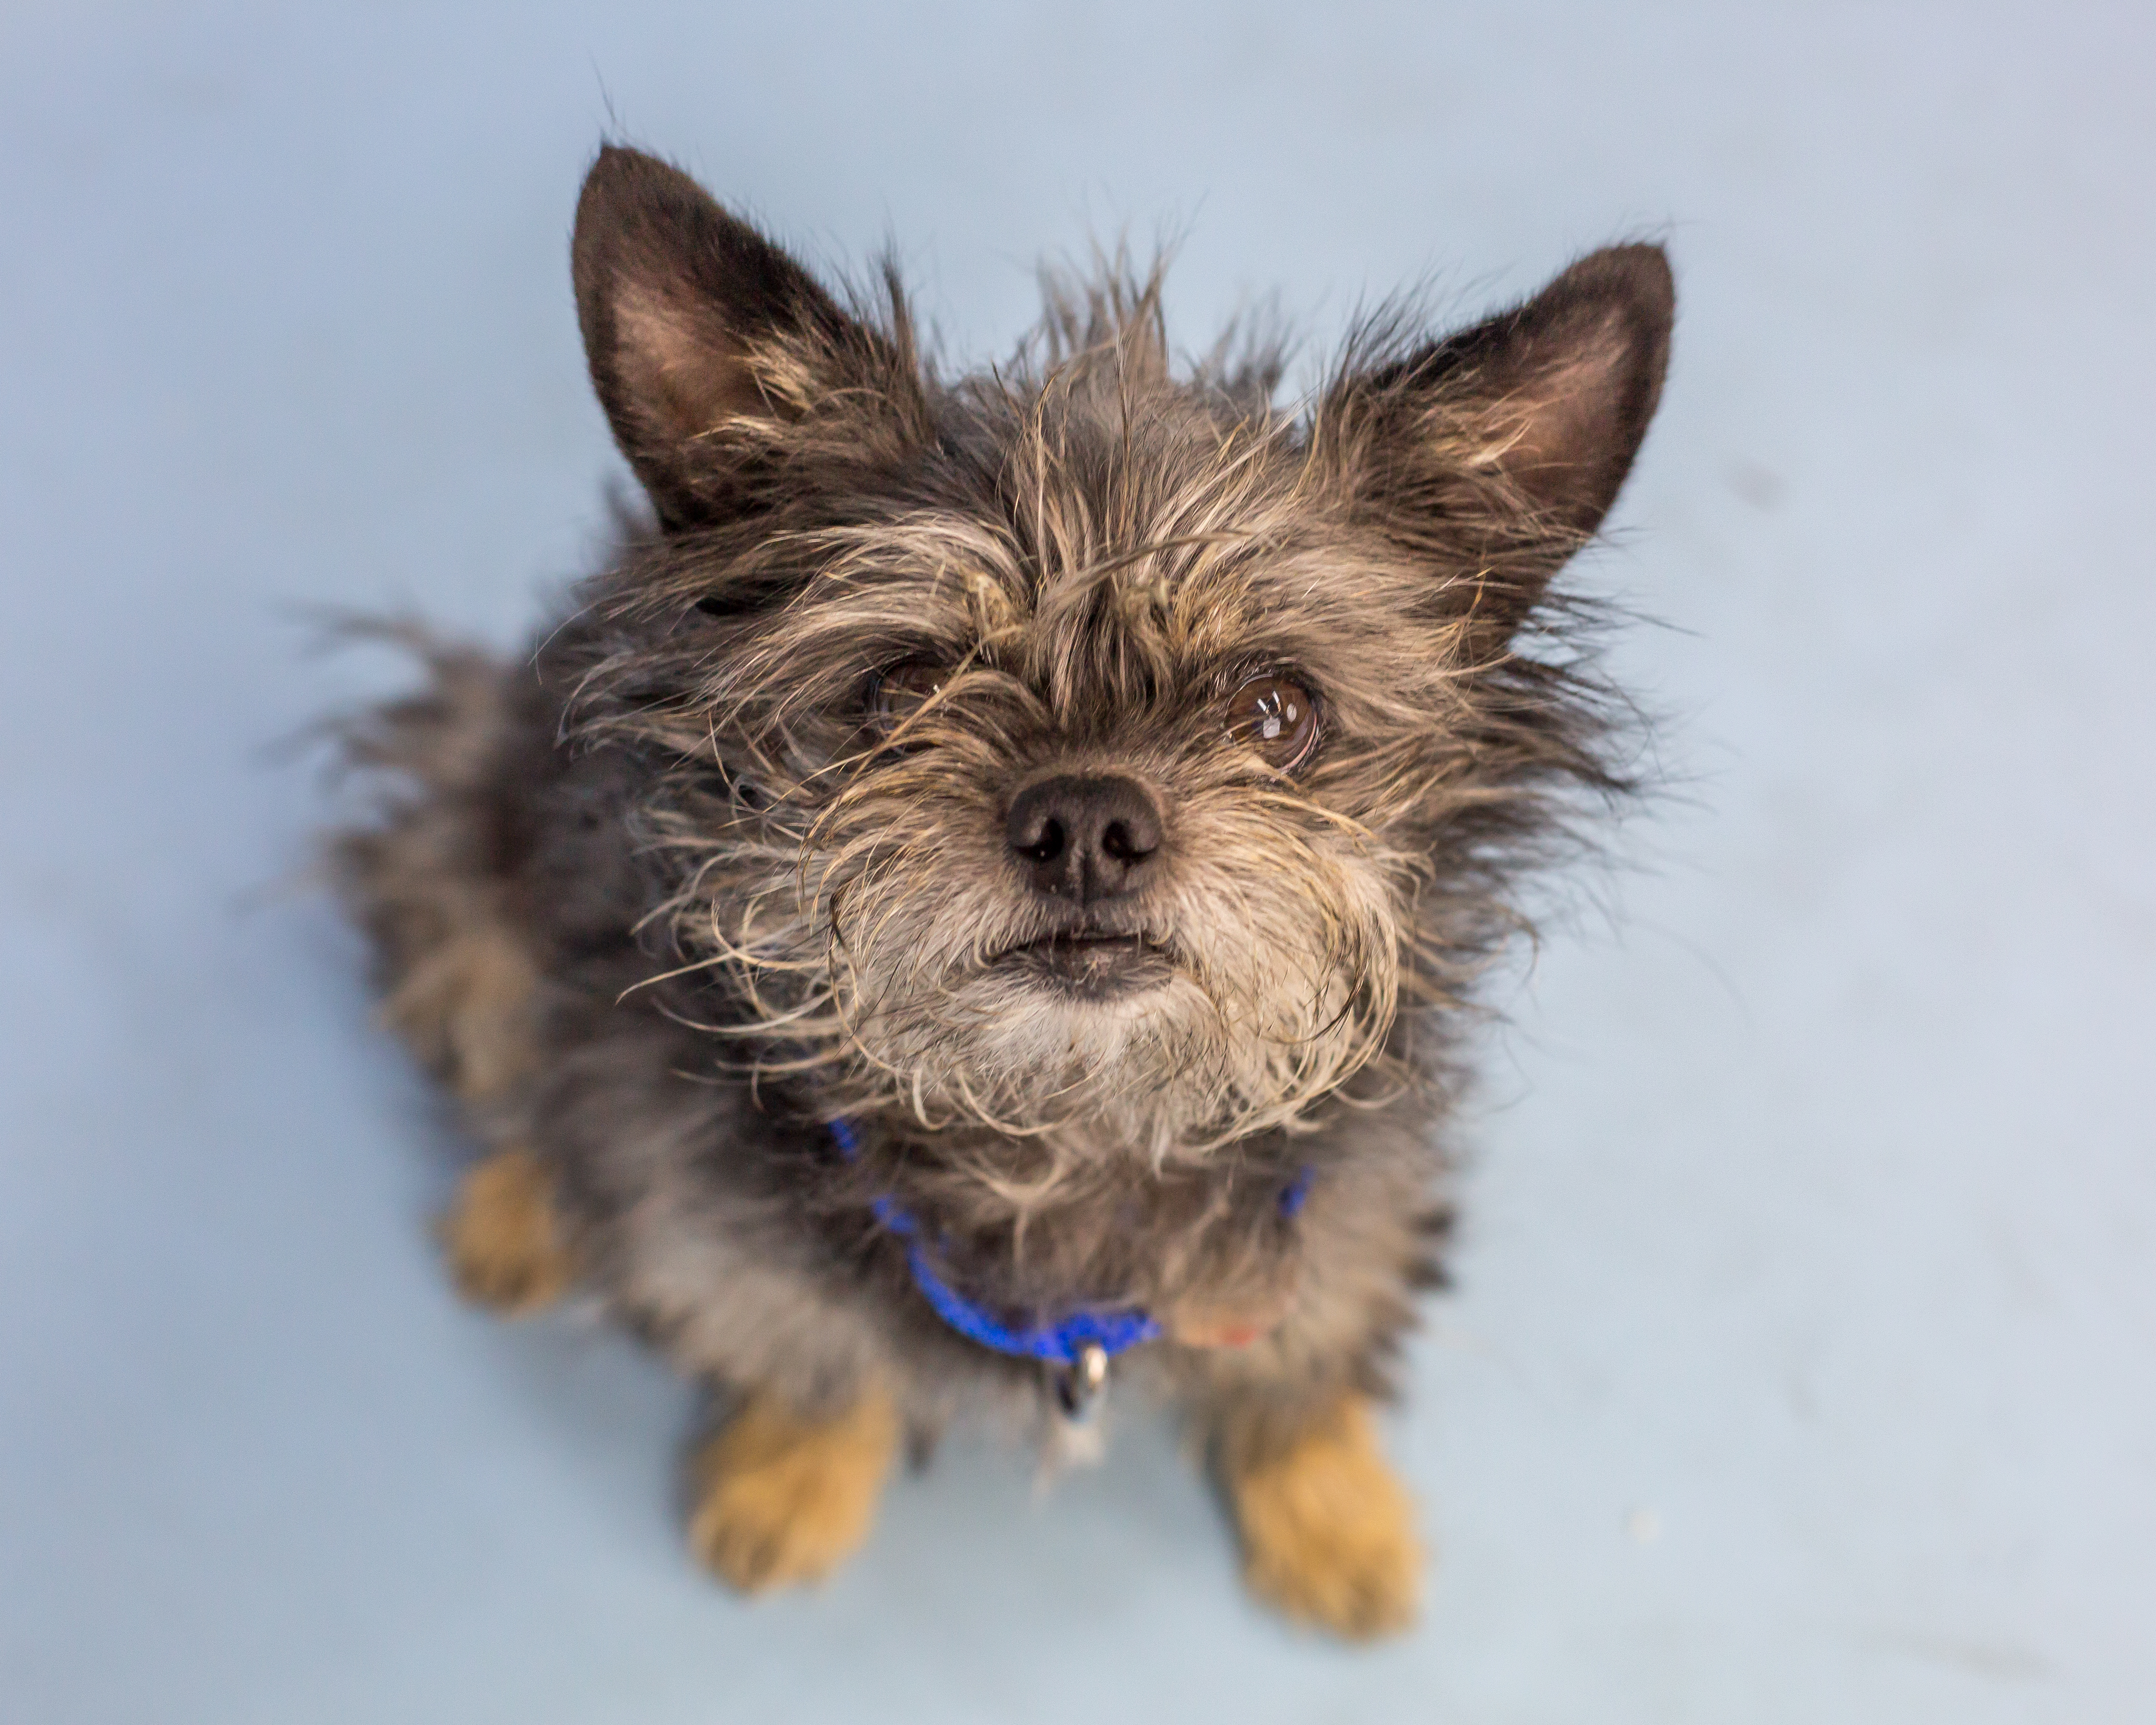 Hi there, I'm Precious (aren't I?) I'm a nine-year-old Yorkshire terrier mix hoping for a fresh start with your family. I've done well with cats and dogs in a previous home, although sometimes I like to keep my things to myself. I'm a petite little lady, so a home with teens and adults will be best so I'm handled gently and given space at times. Mellow and loyal describe me well – I want to be your best friend!